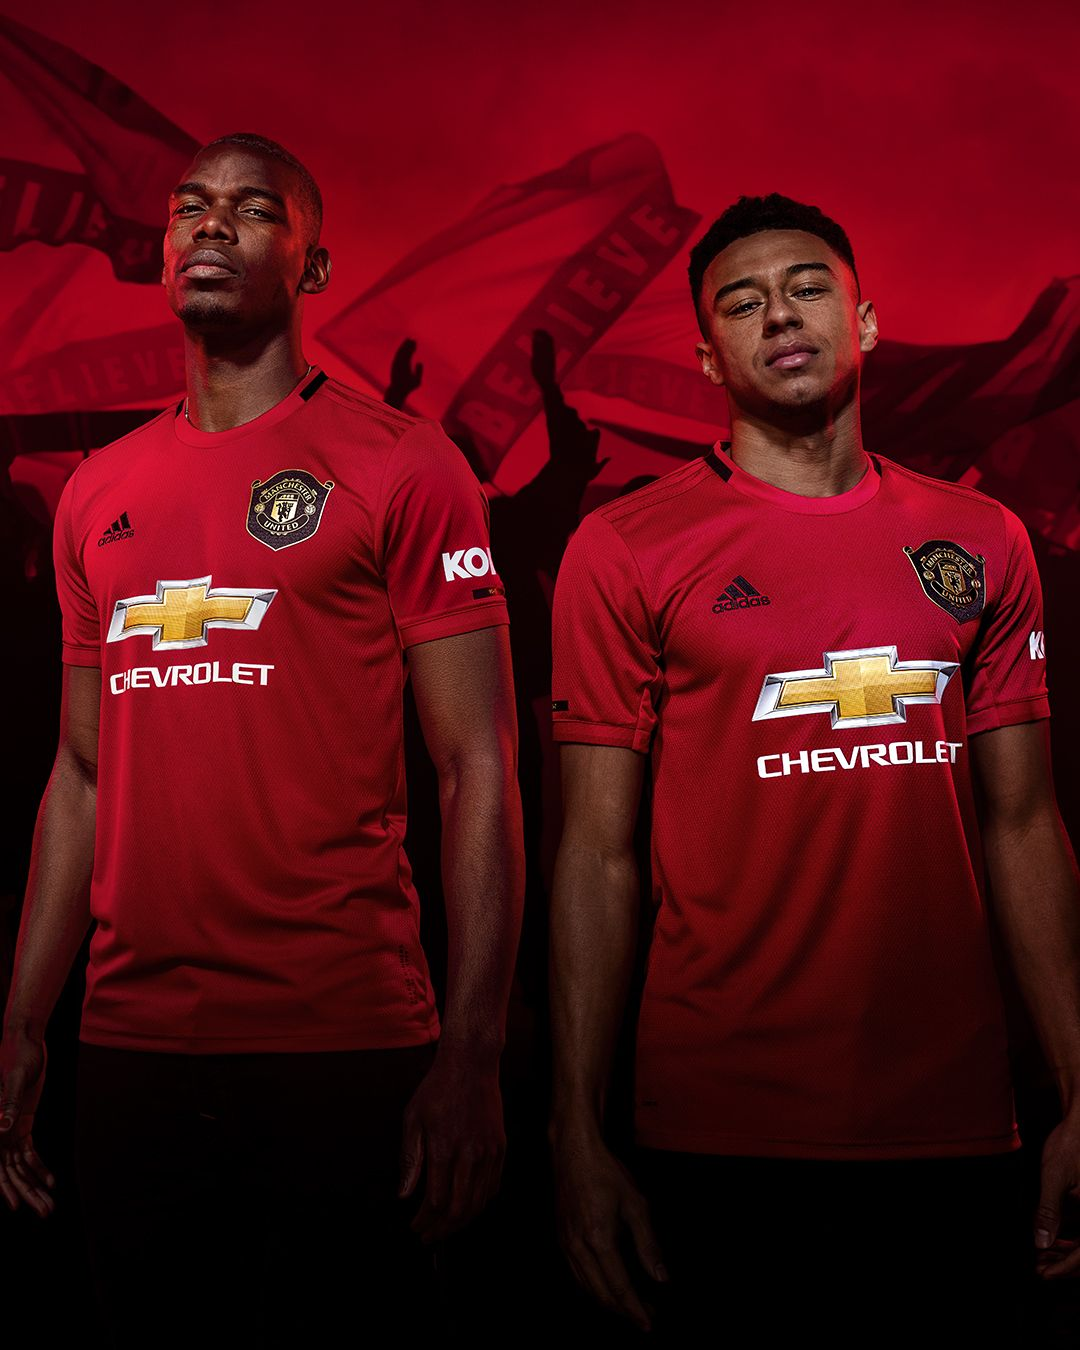 Manchester United Jersey Manchester United Store Soccerpro Manchester United Manchester United Wallpaper Manchester